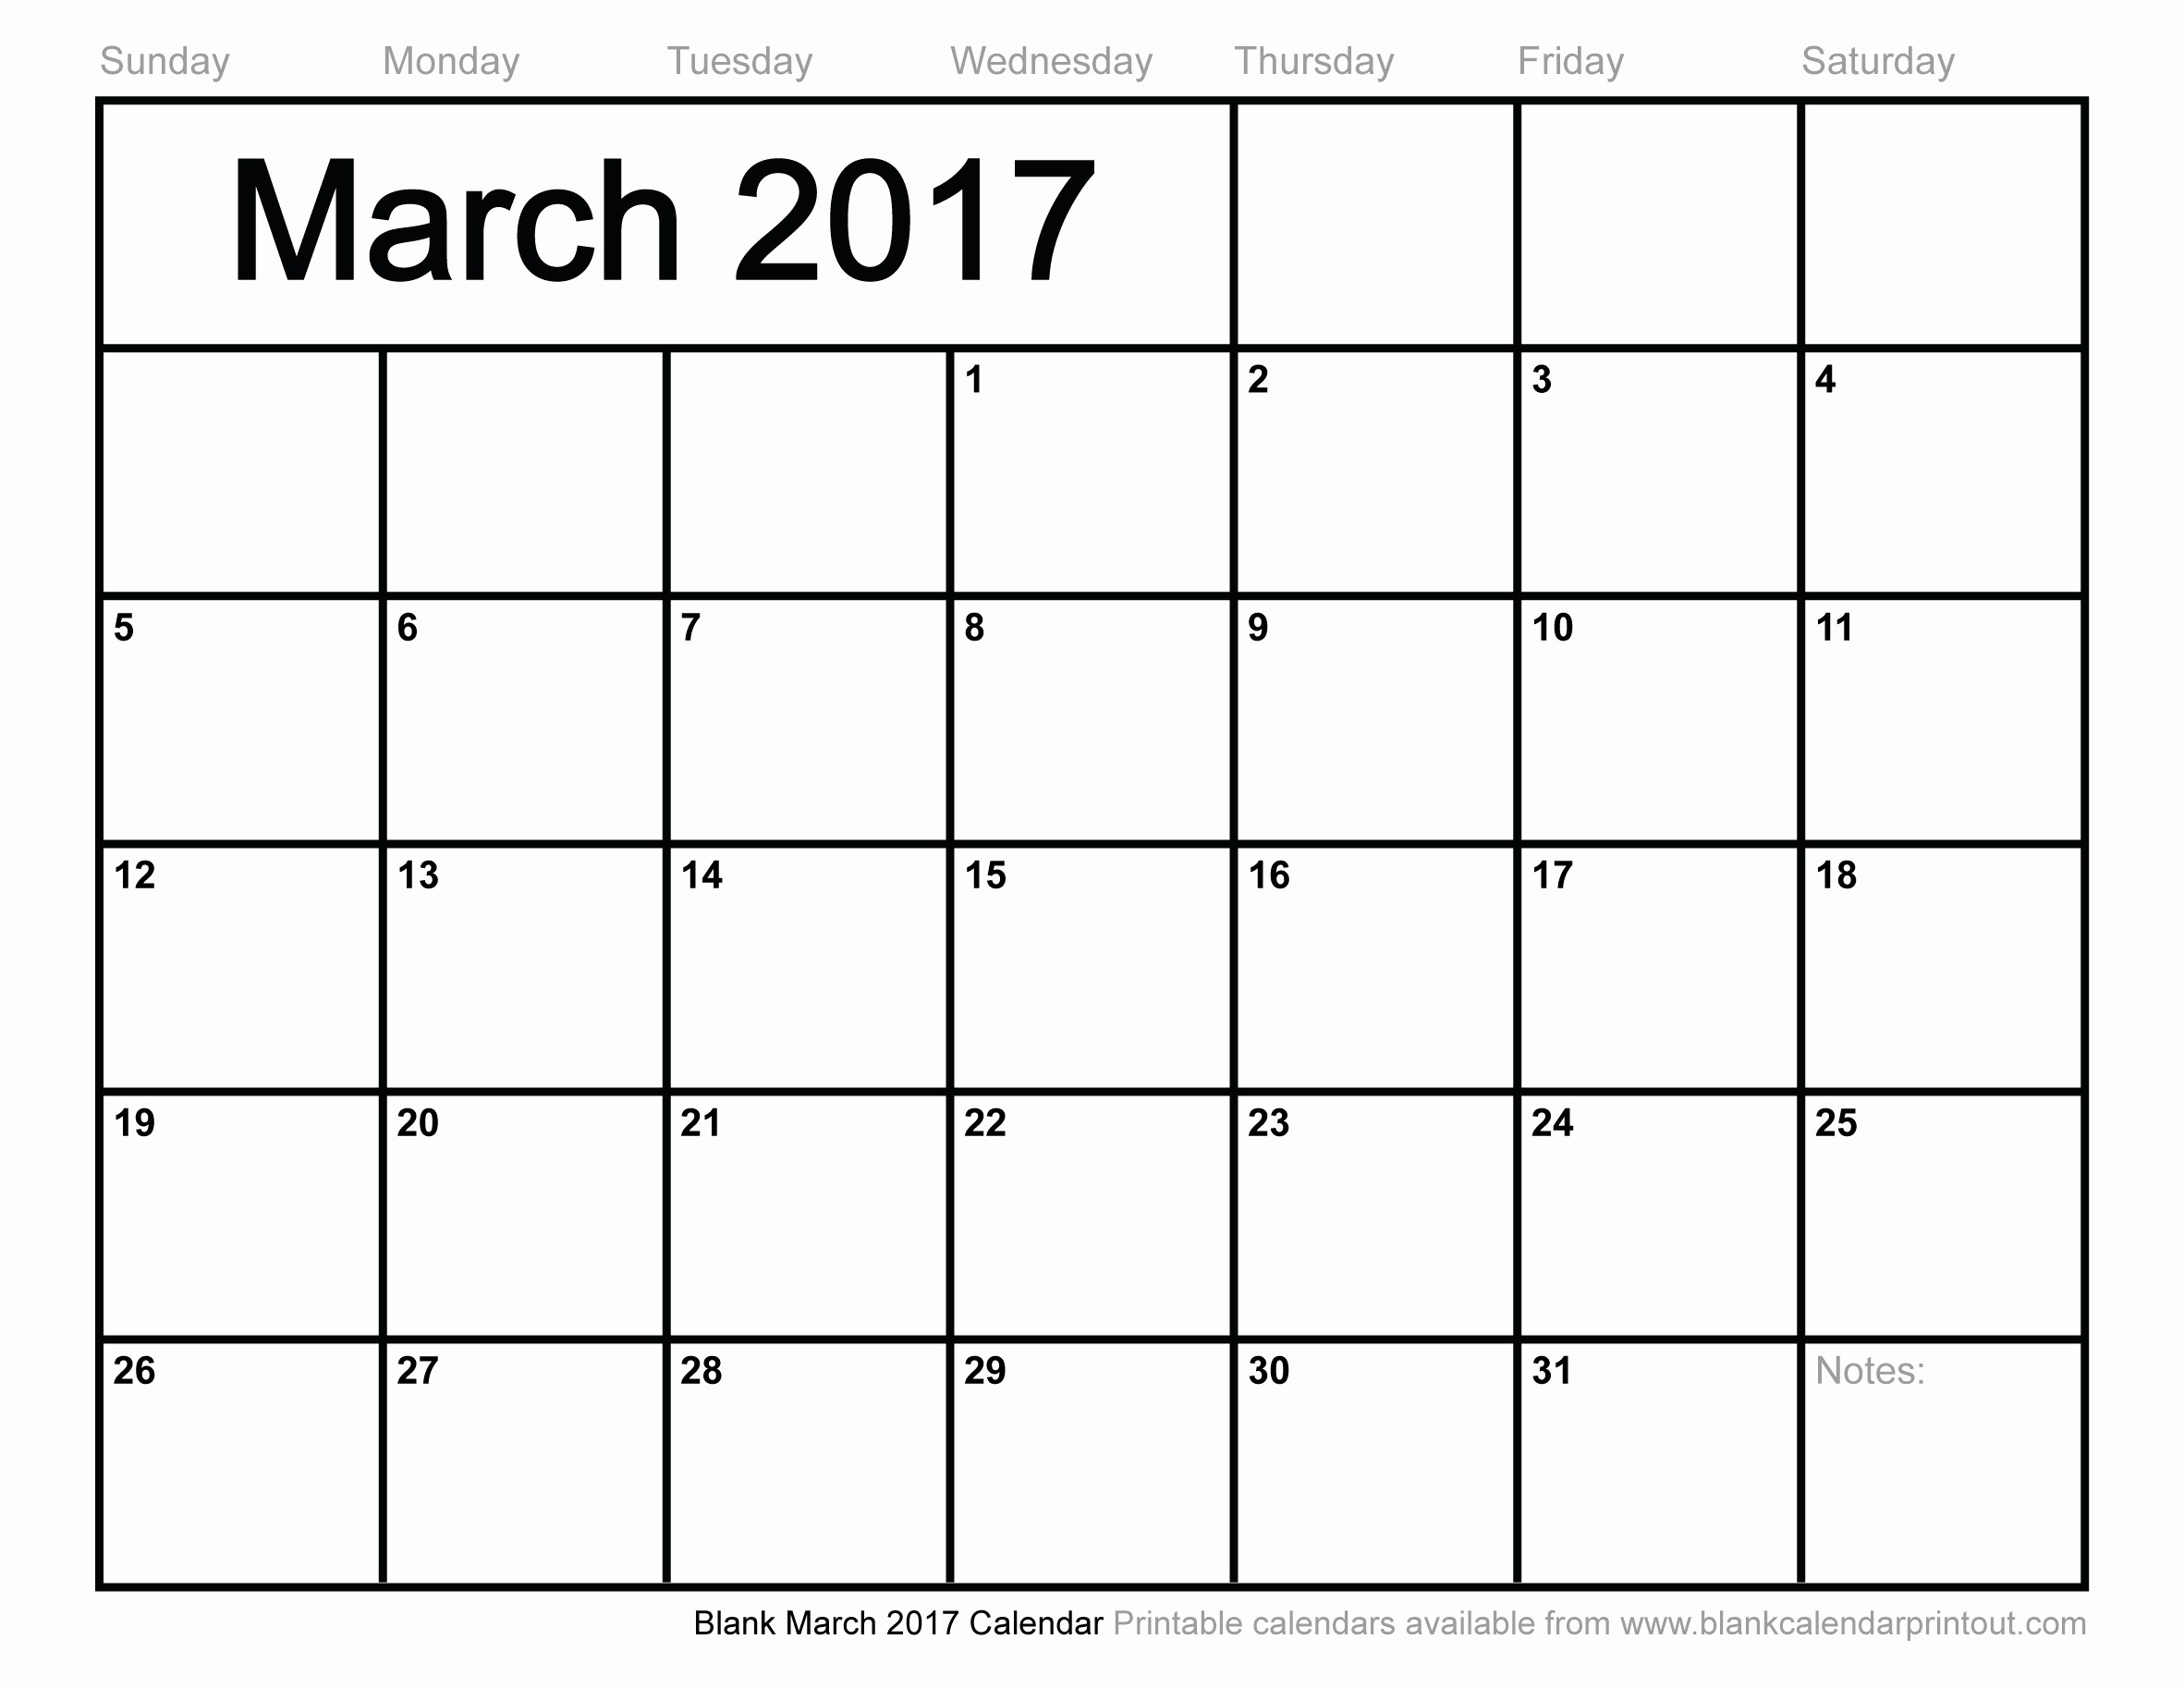 Blank Monthly Calendar 2017 Printable Best Of Blank March 2017 Calendar to Print